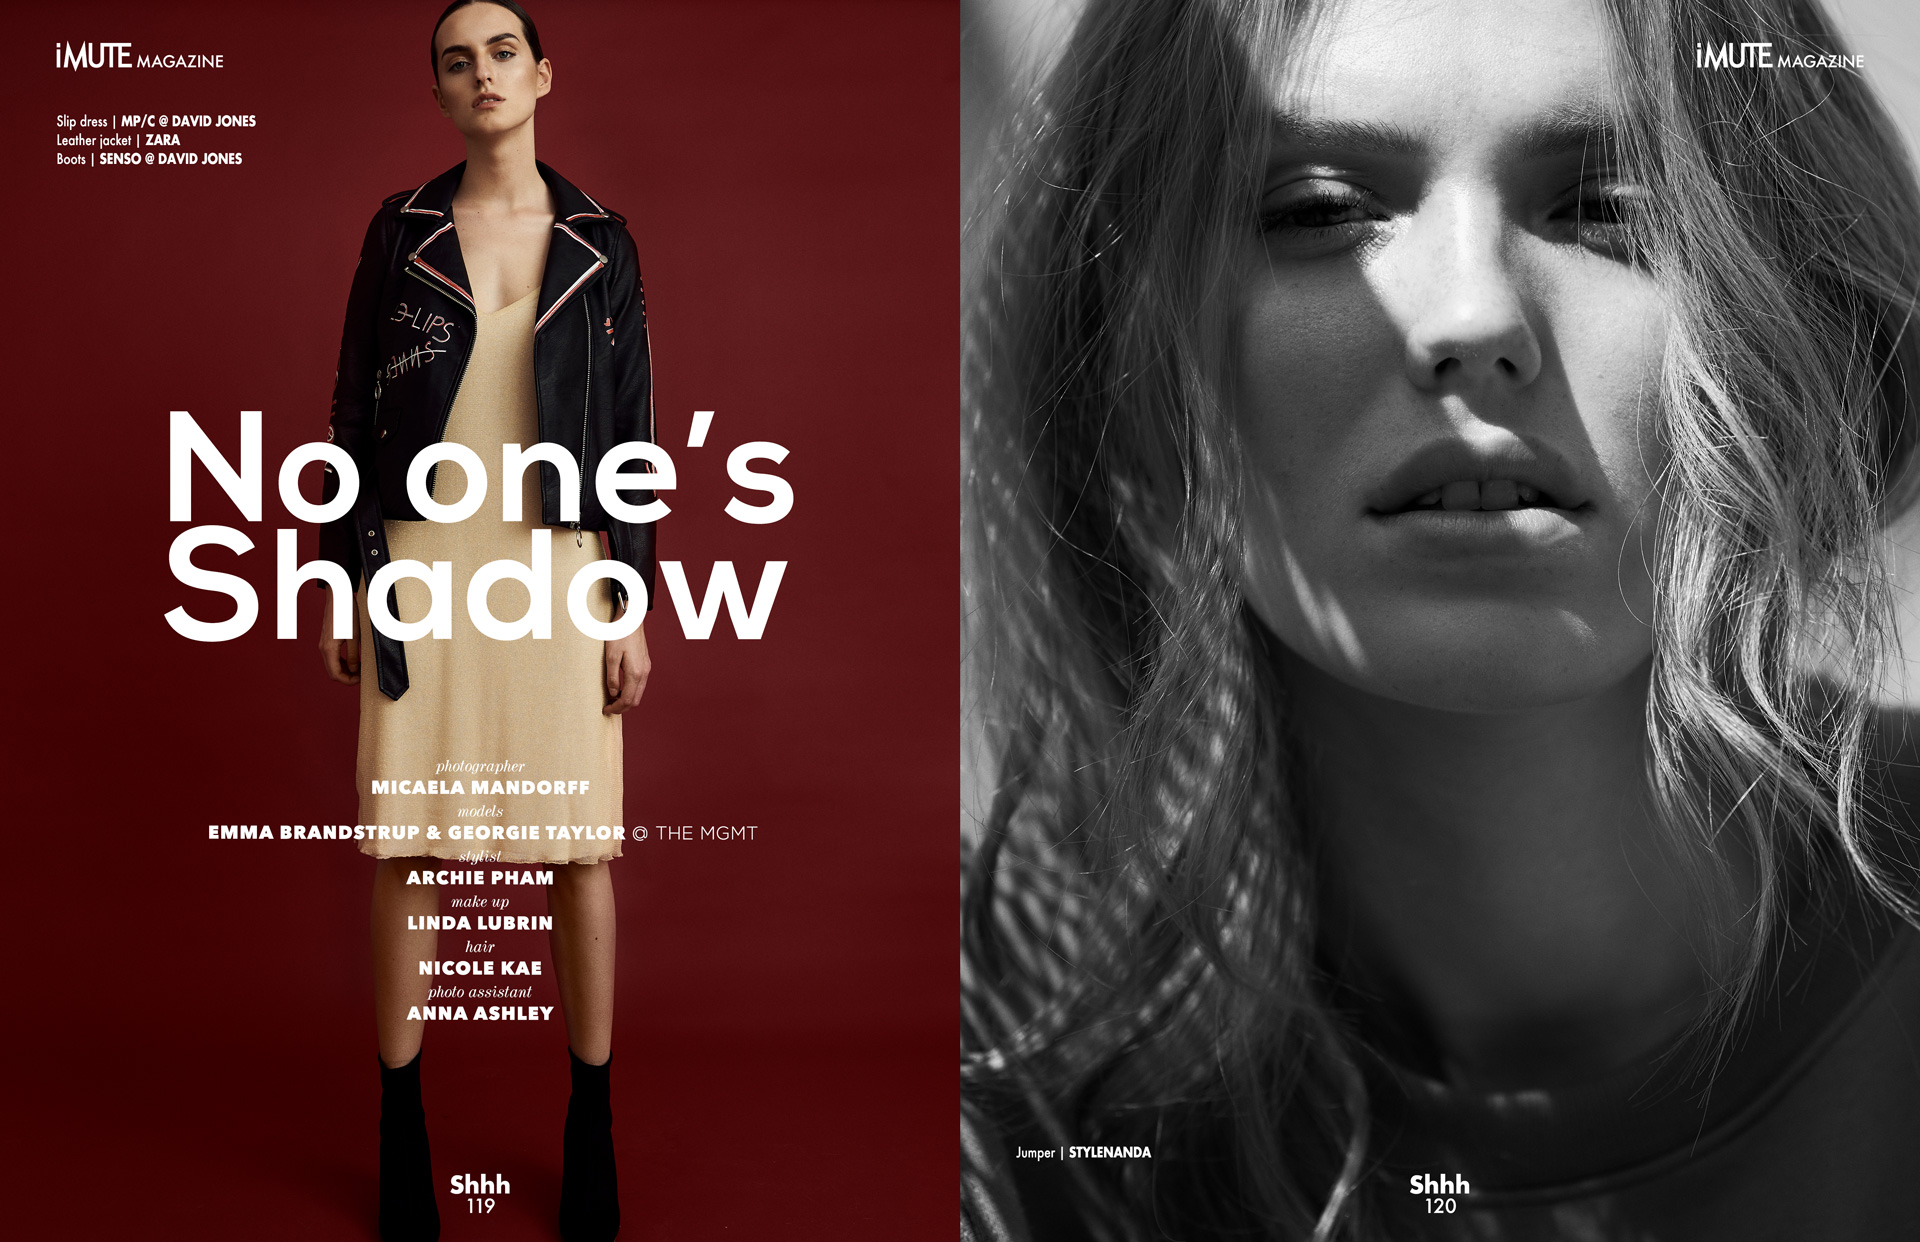 No one's Shadow editorial for iMute Magazine #18 Spring Issue Photographer | Micaela Mandorff Models | Georgie Taylor & Emma Brandstrup @ The Mgmt Stylist | Archie Pham Makeup | Linda Lubrin Hair | Nicole Kae Photo Assistant | Anna Ashley